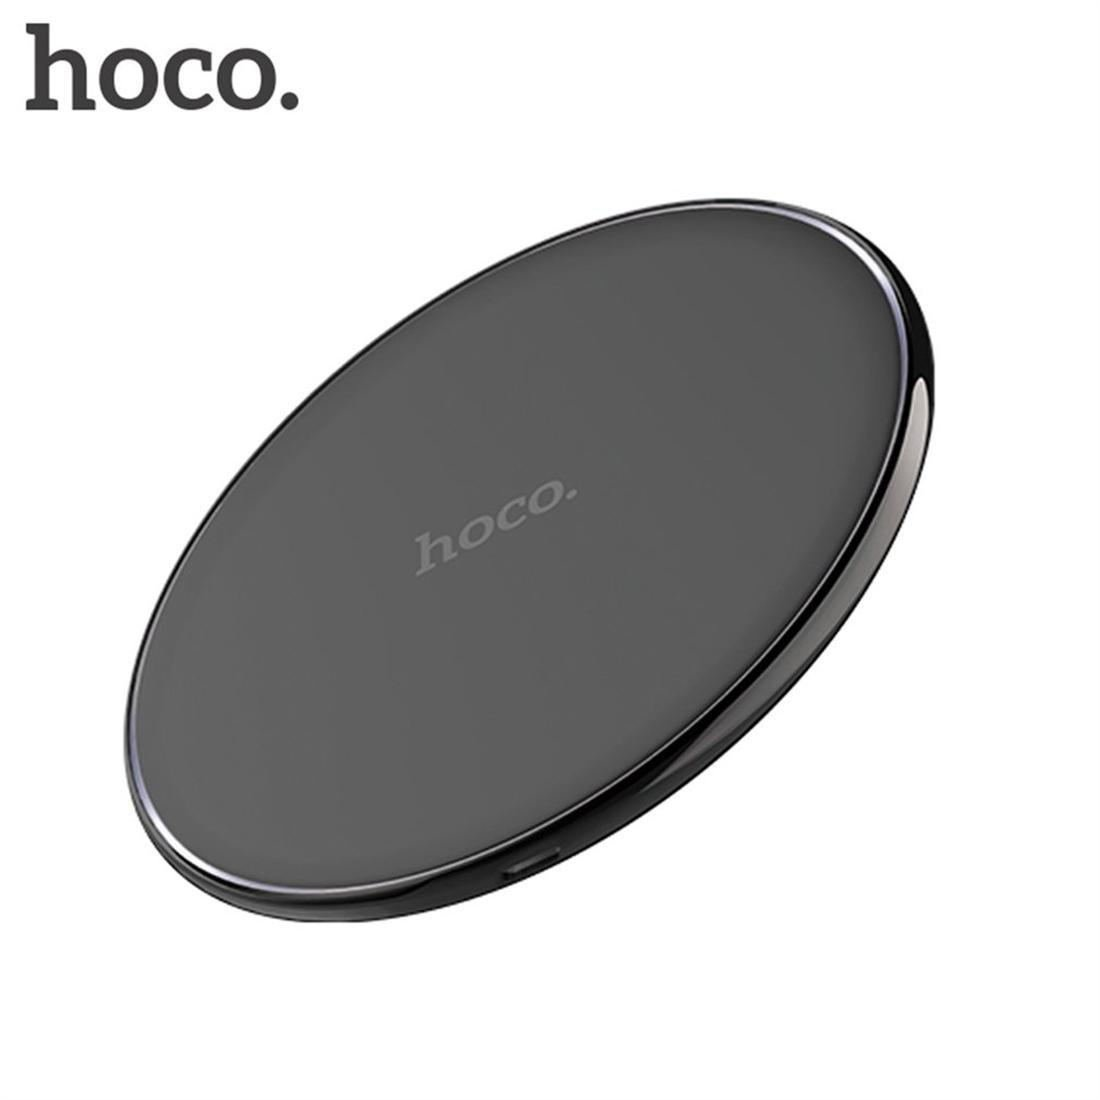 HOCO CW6 Wireless Charger Portable Charging Device Support For Qi Standard